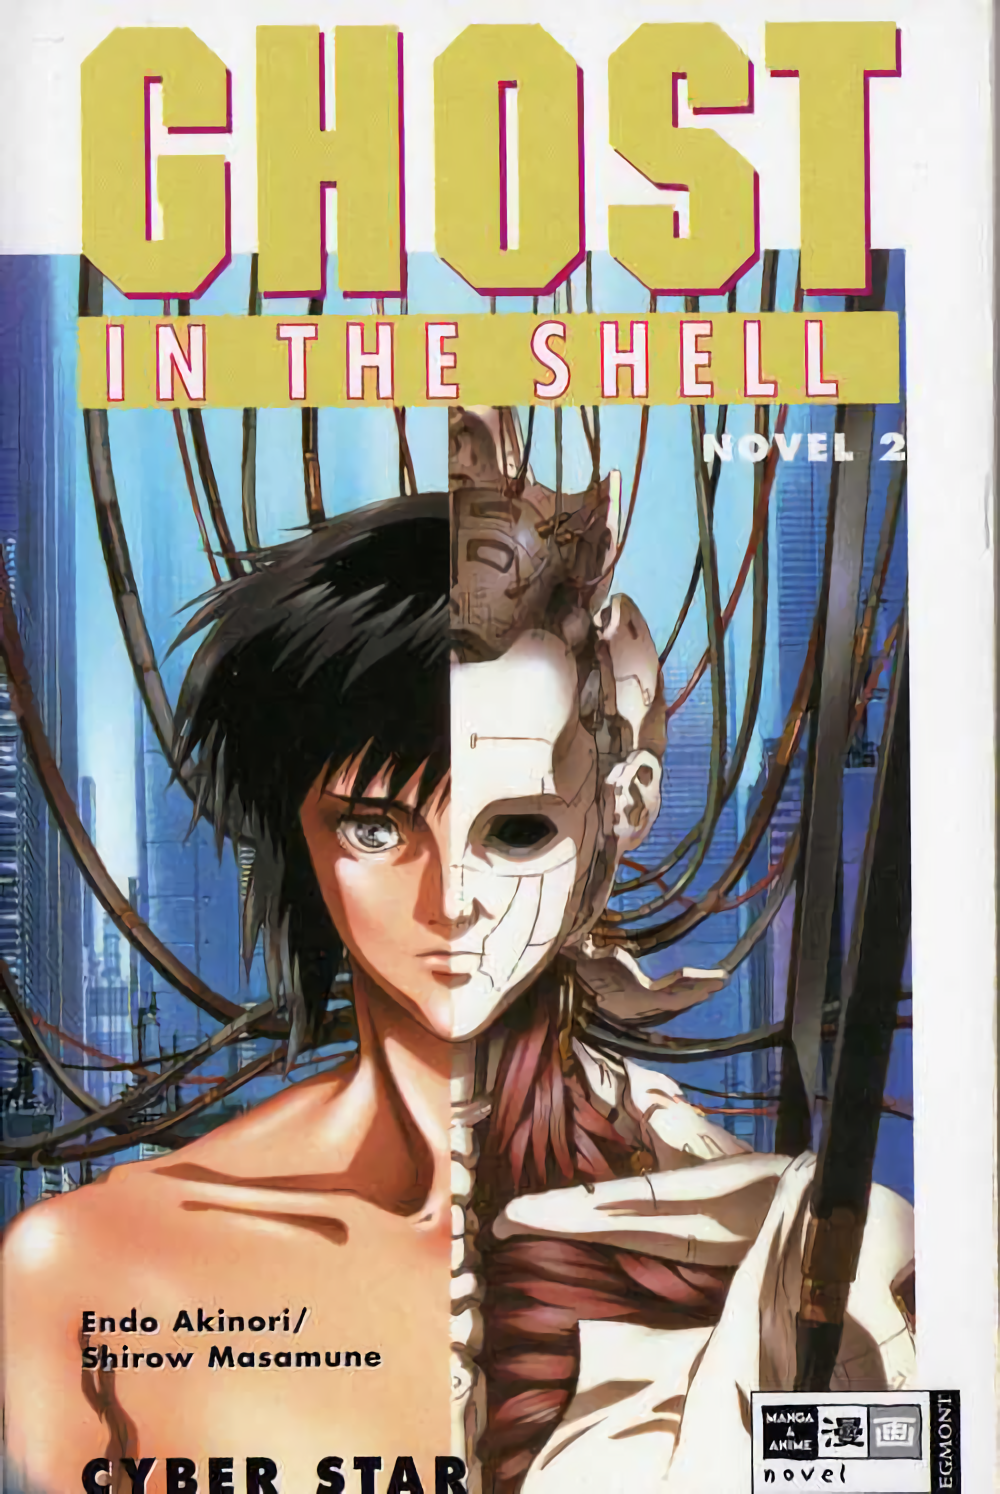 Cover des 2. Bandes von Ghost in the Shell - Light Novel